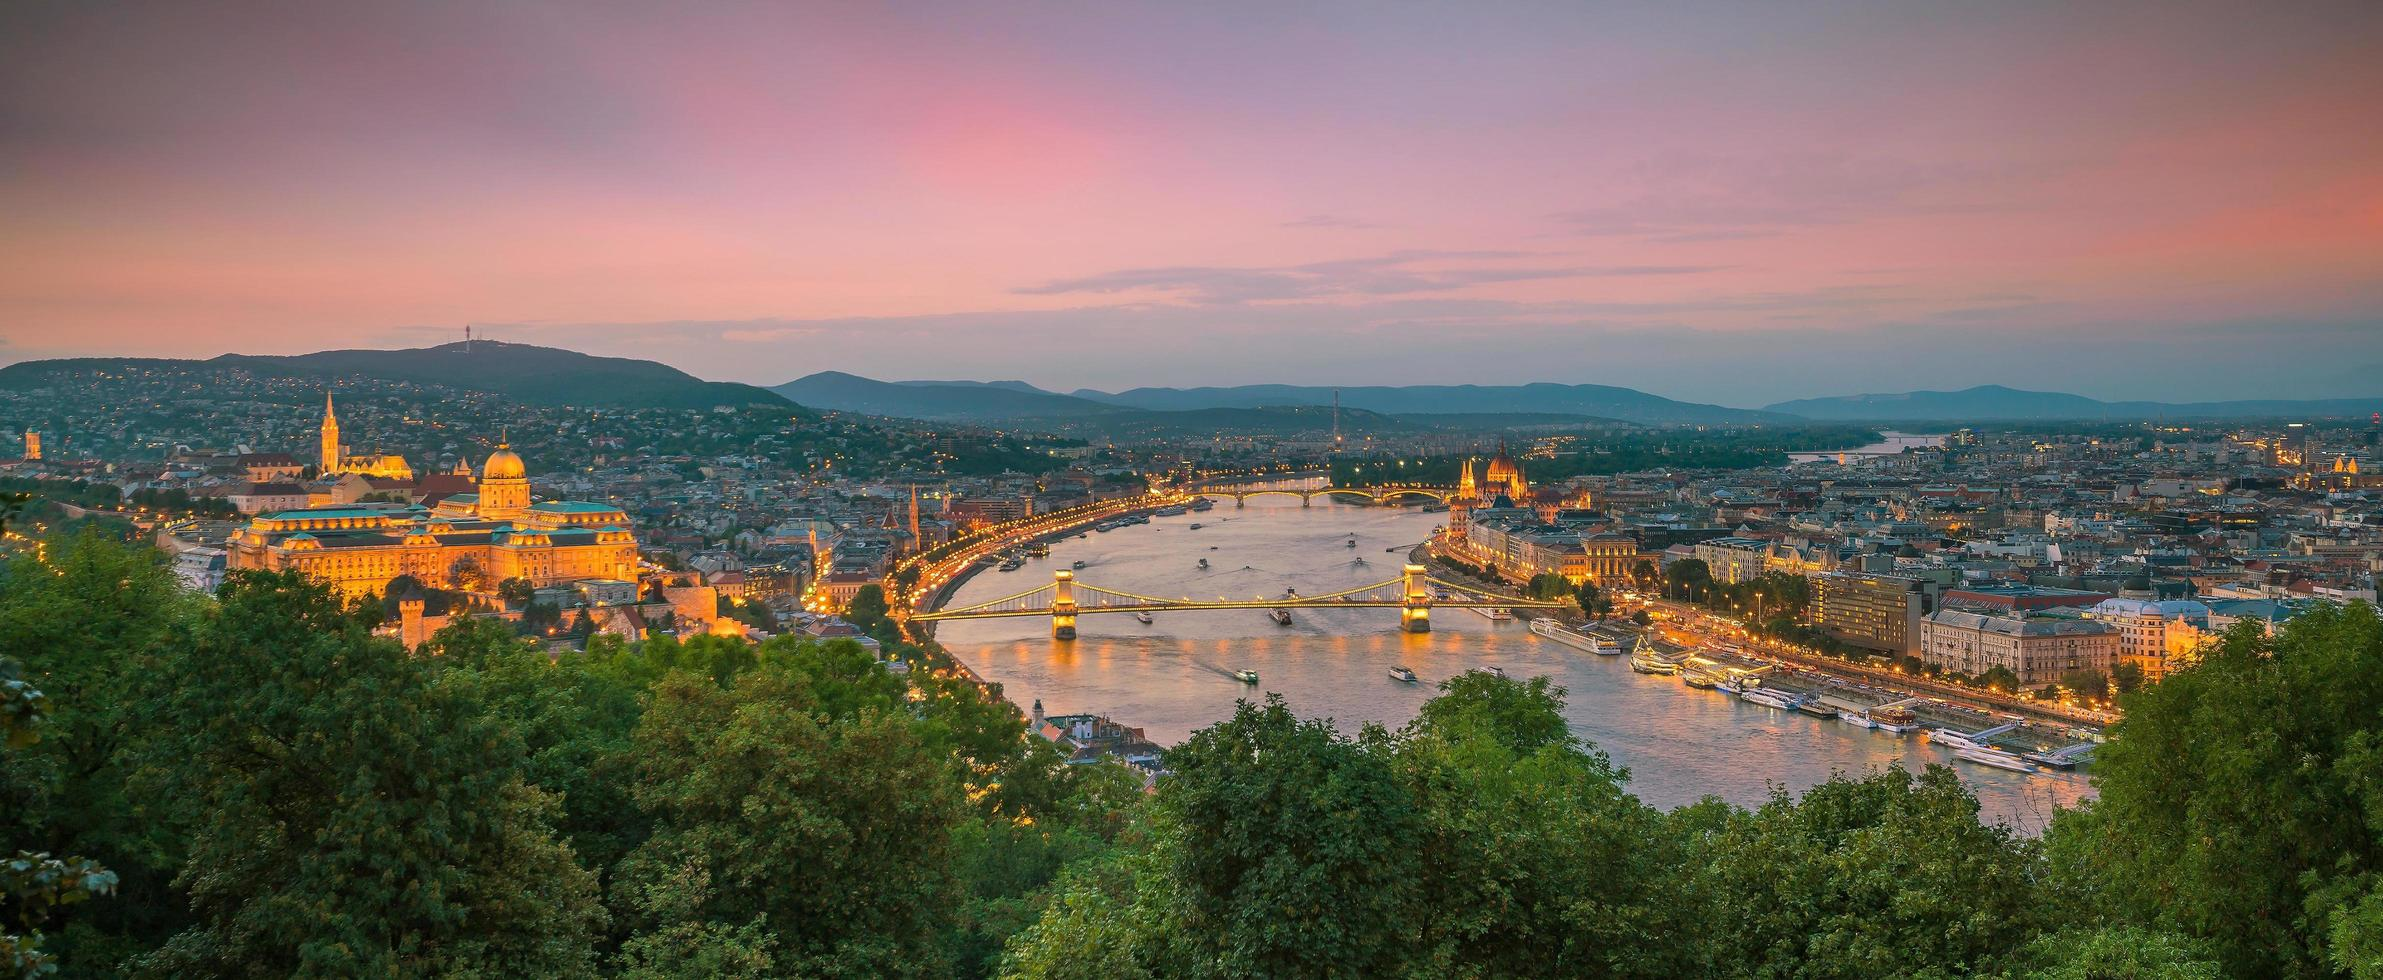 Downtown Budapest in Hungary photo